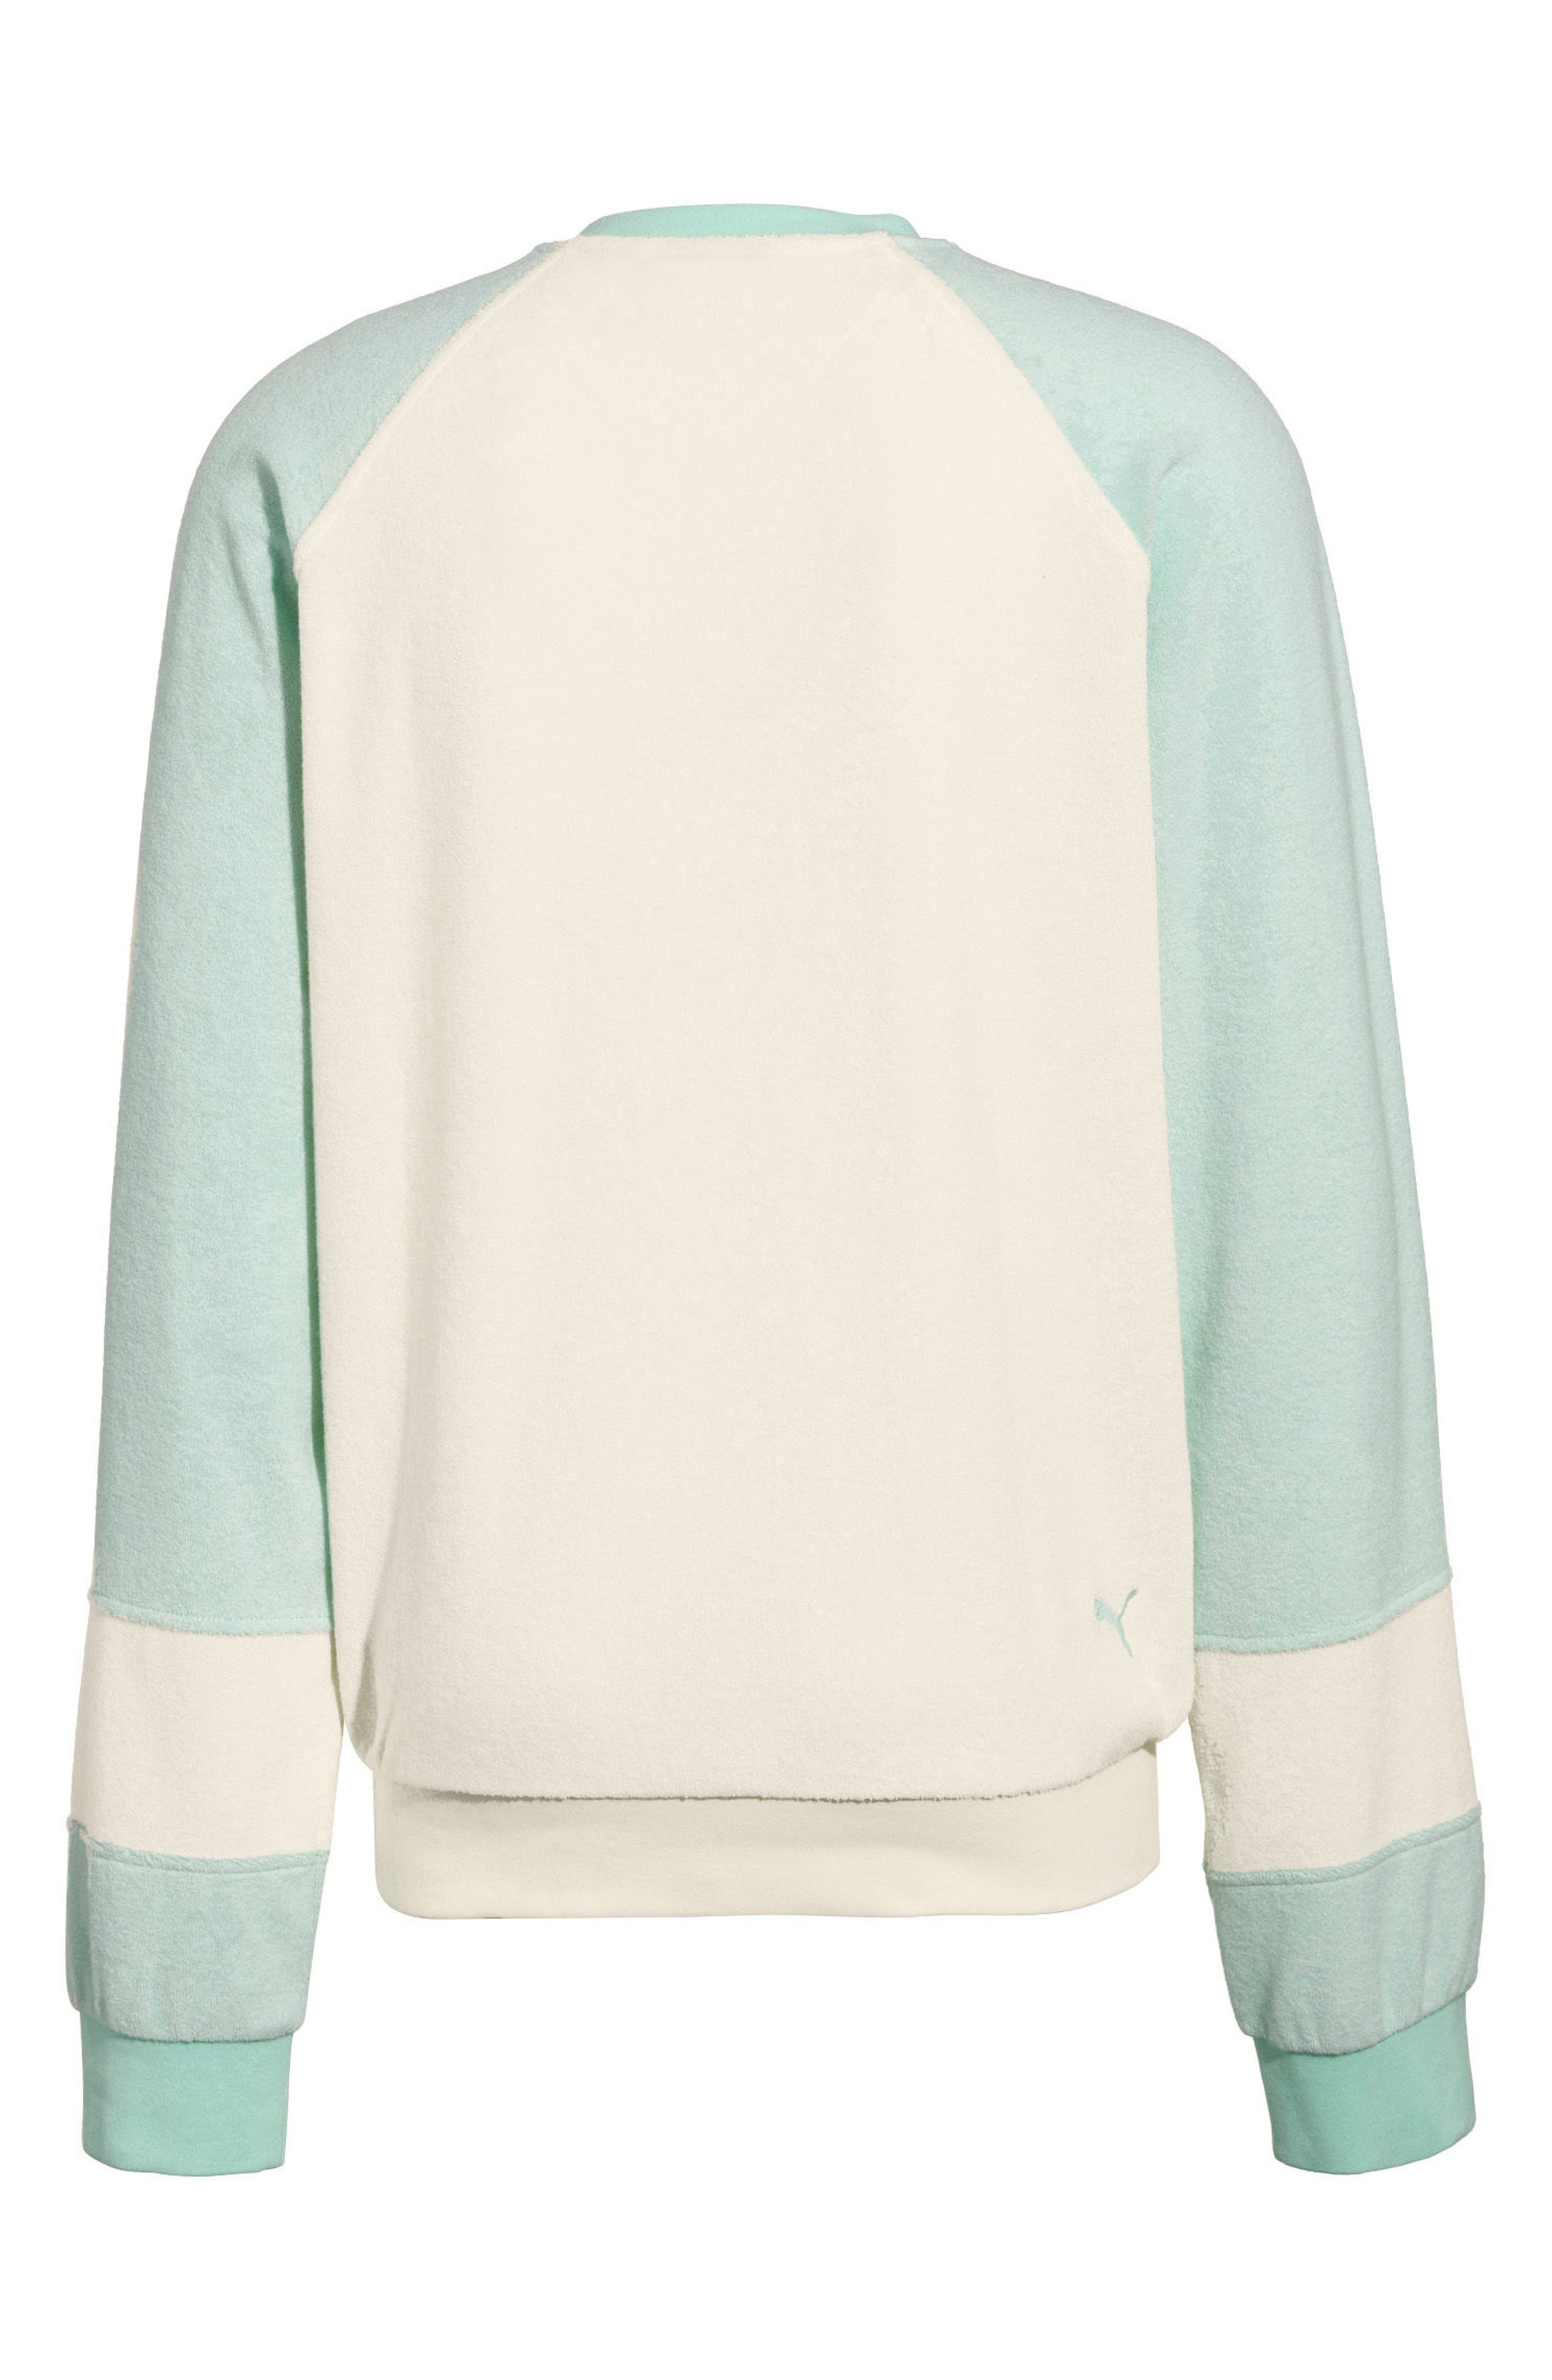 PUMA by Rihanna Palm Graphic Terry Cloth Sweater,                             Alternate thumbnail 2, color,                             Vanilla Ice